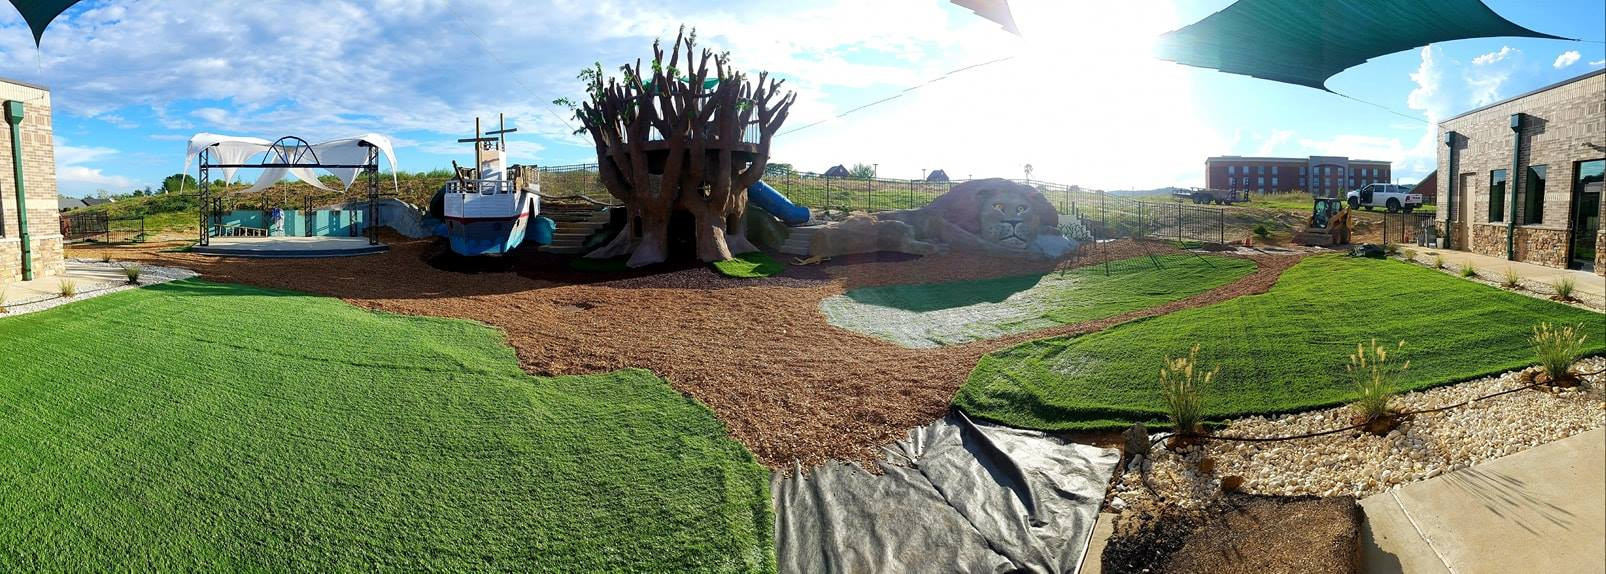 A wide view of our outdoor space